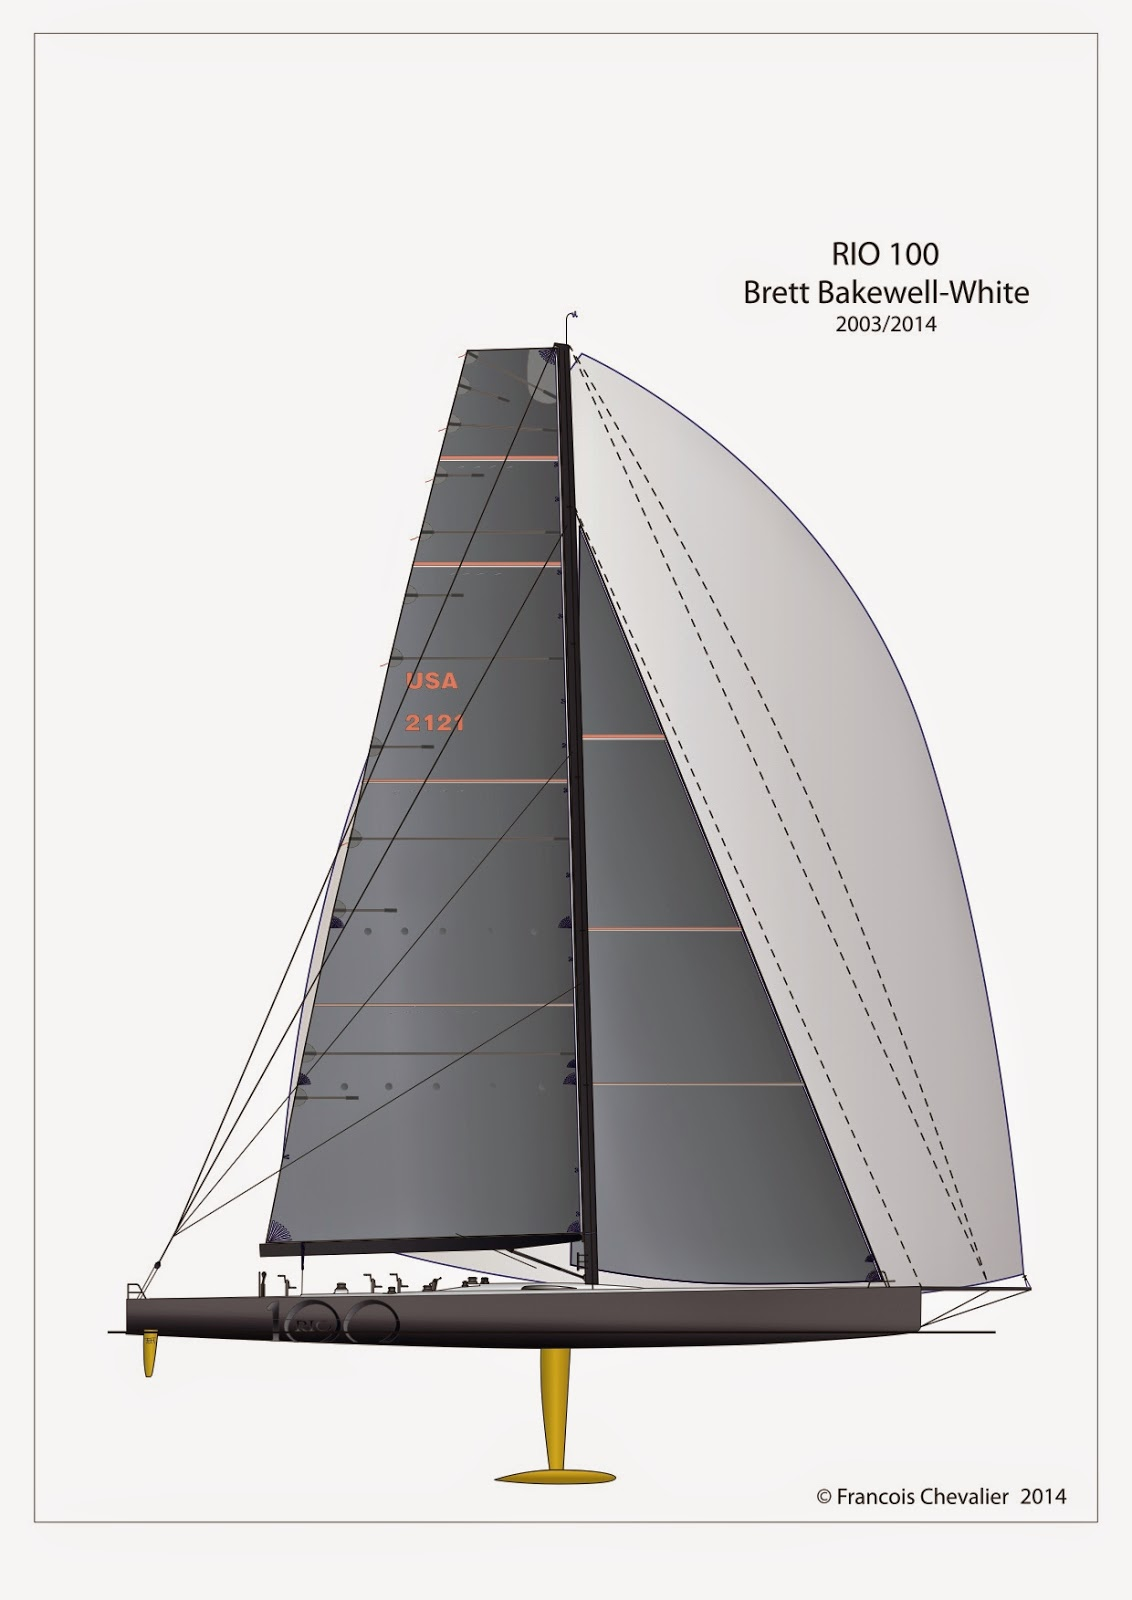 hight resolution of racing yacht diagram wiring diagram source rc boat diagram racing yacht diagram